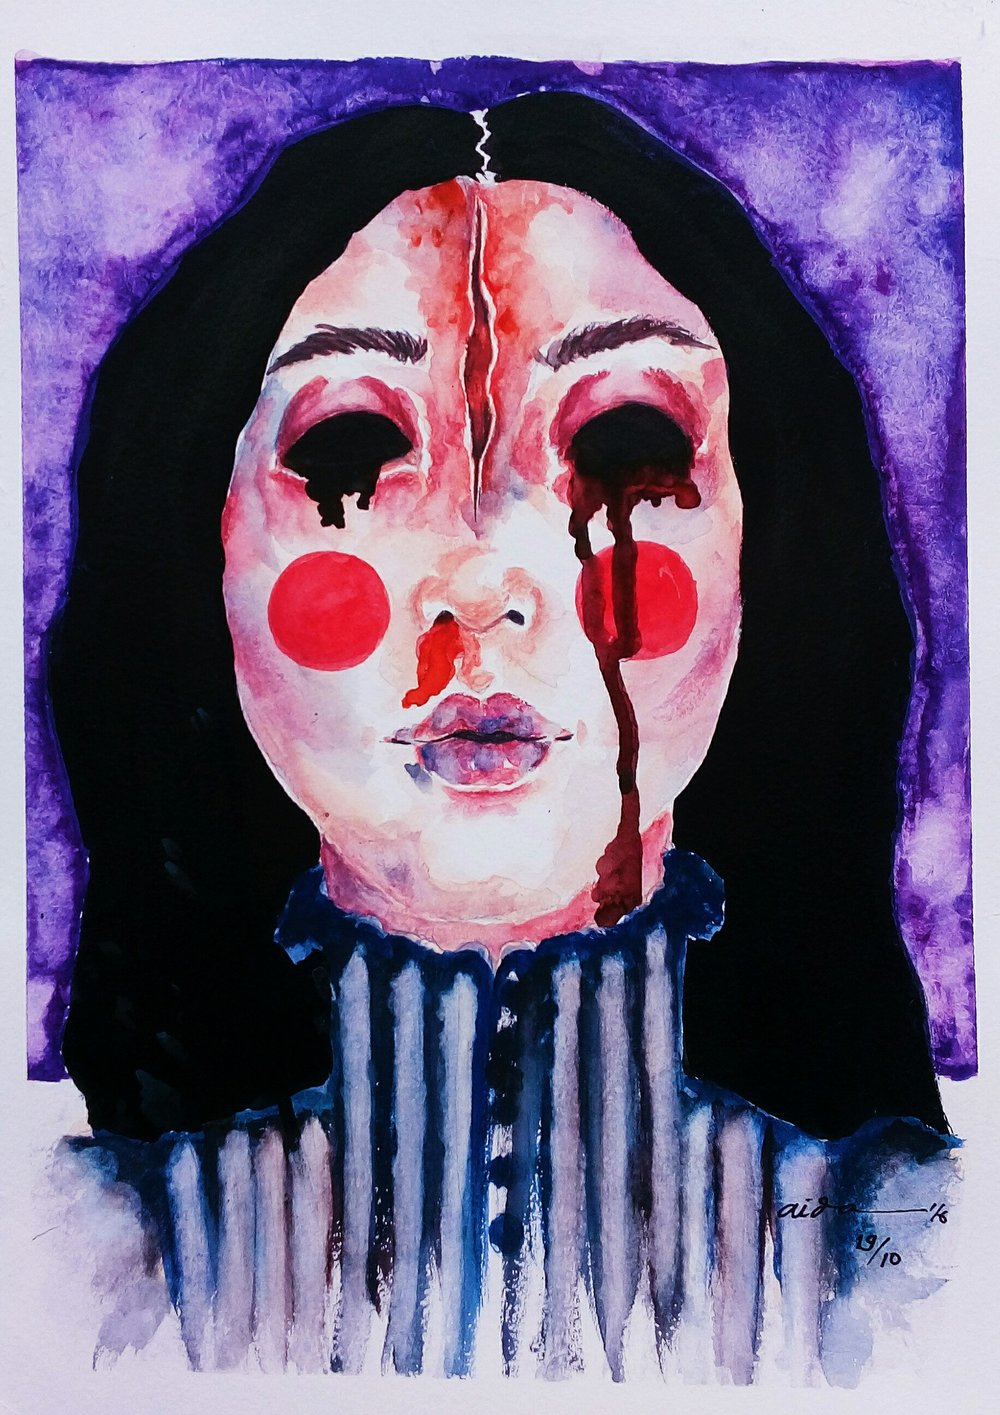 """Judul : """"BLOODY MARY"""" Artis : Aida Juhandi Medium : Ink and water color on paper"""